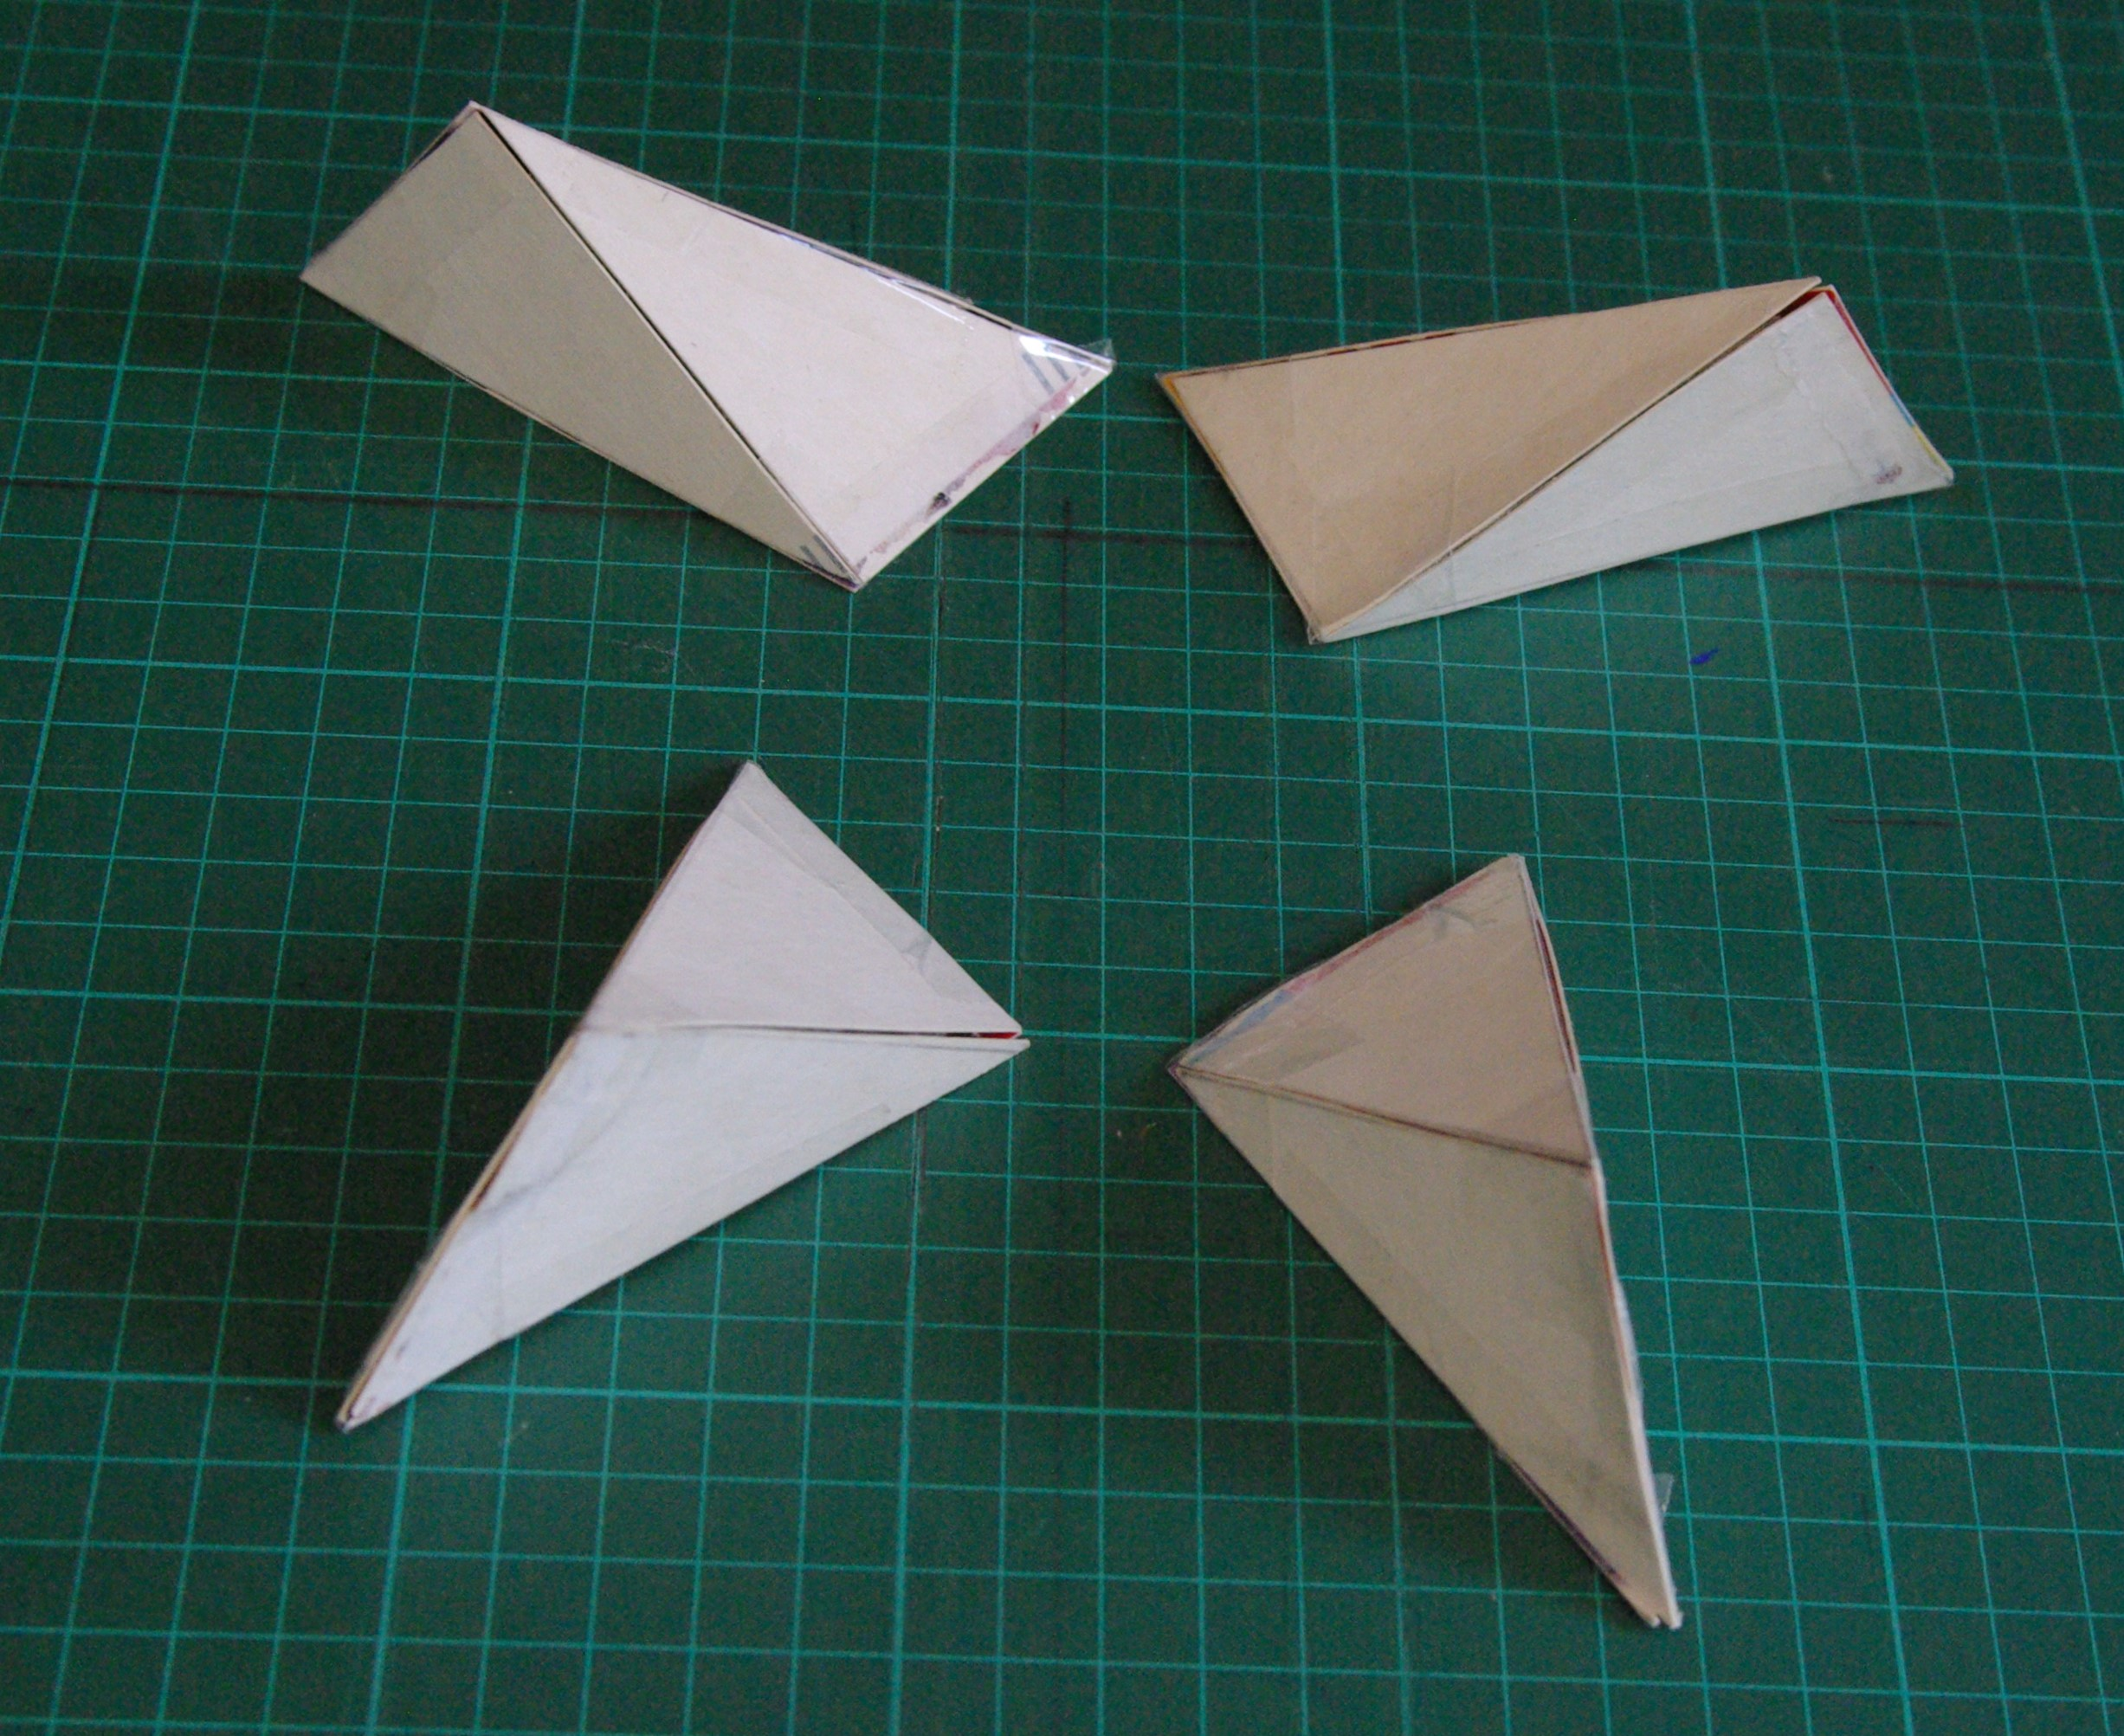 Picture of Construction of Nets Used for Assembling Four Non-regular Tetrahedra